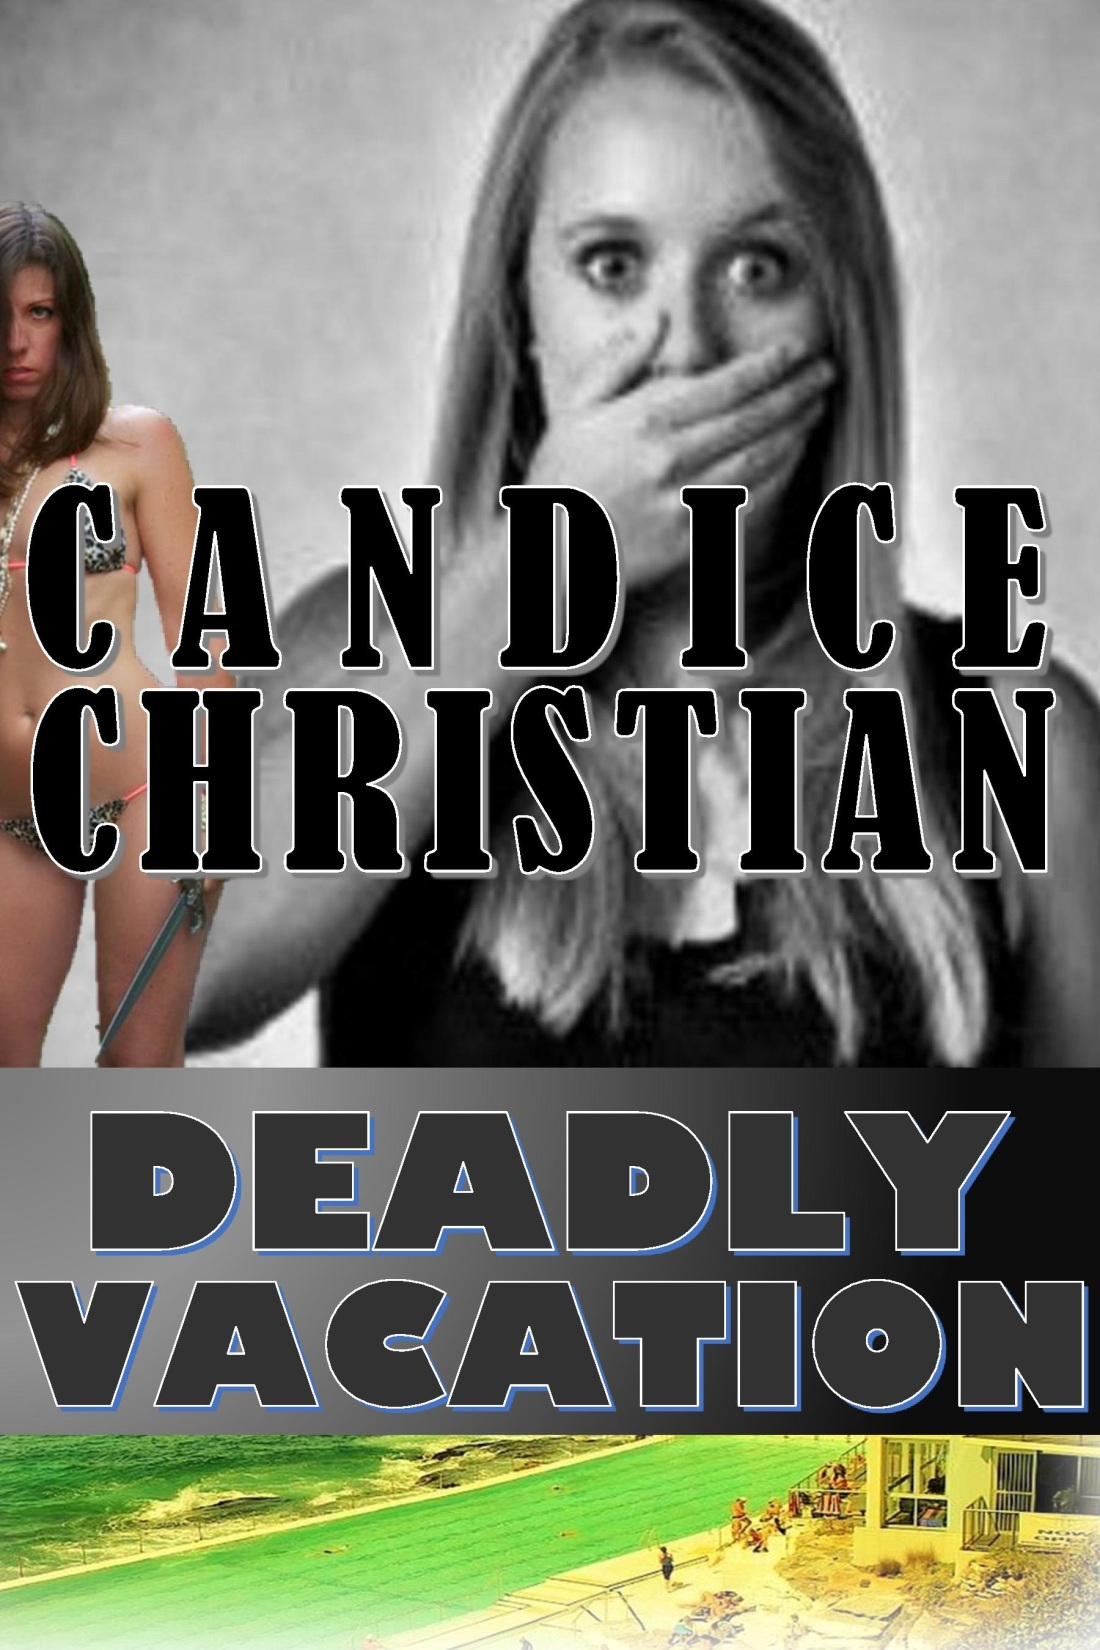 DEADLY VACATION COVER